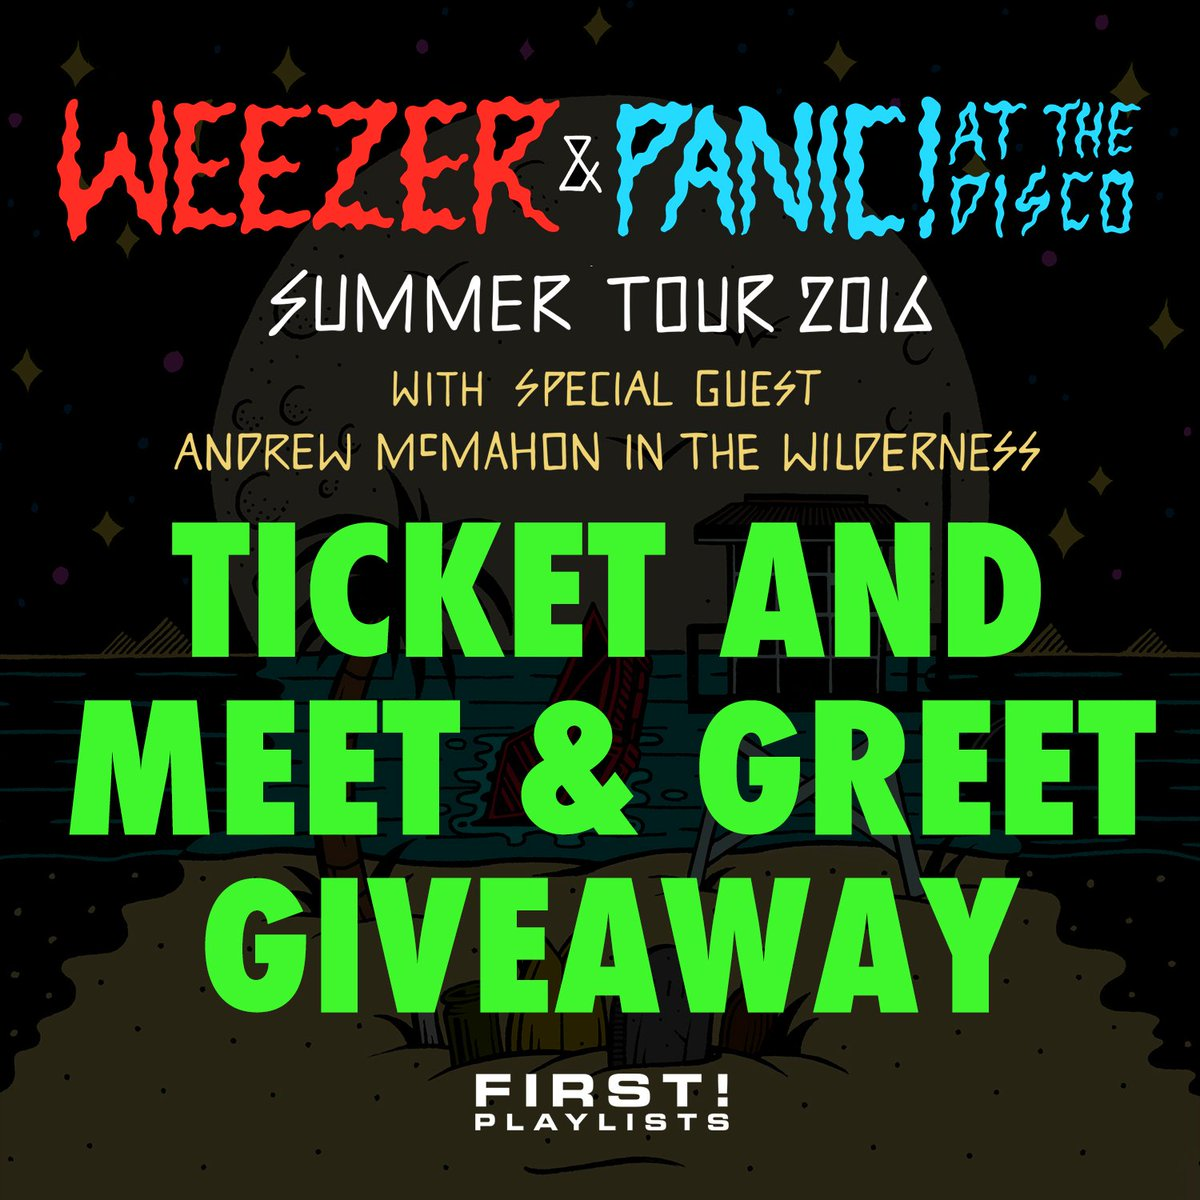 Enter to win a pair of tix + meet & greet passes w @panicatthedisco @weezer & @andrewmcmahon https://t.co/I6oGxyqdKo https://t.co/aXoxQUlHk0